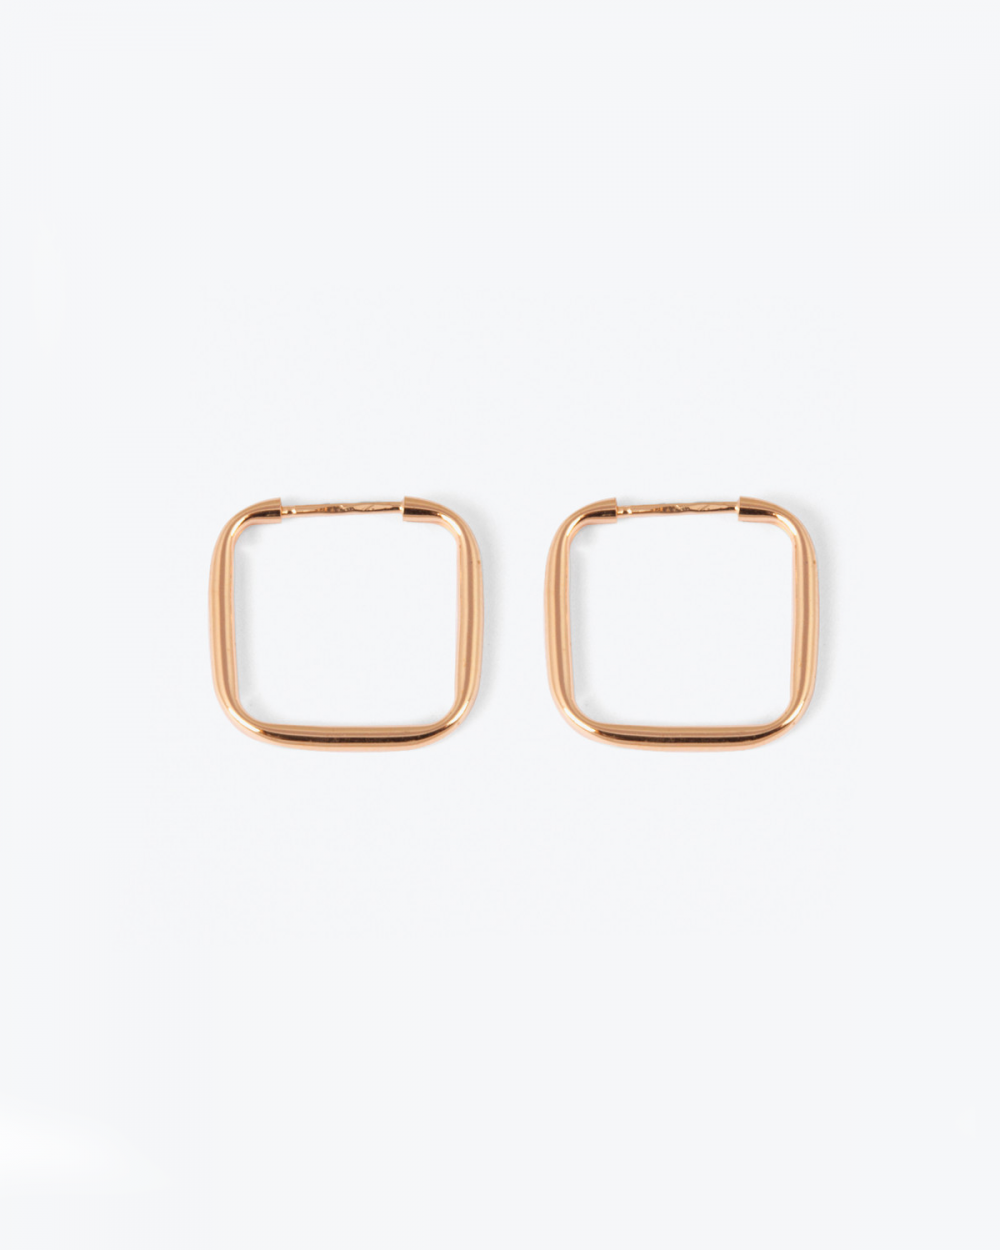 Earrings PINK GOLD SQUARE HOOP PAIR EARRINGS NOVE25